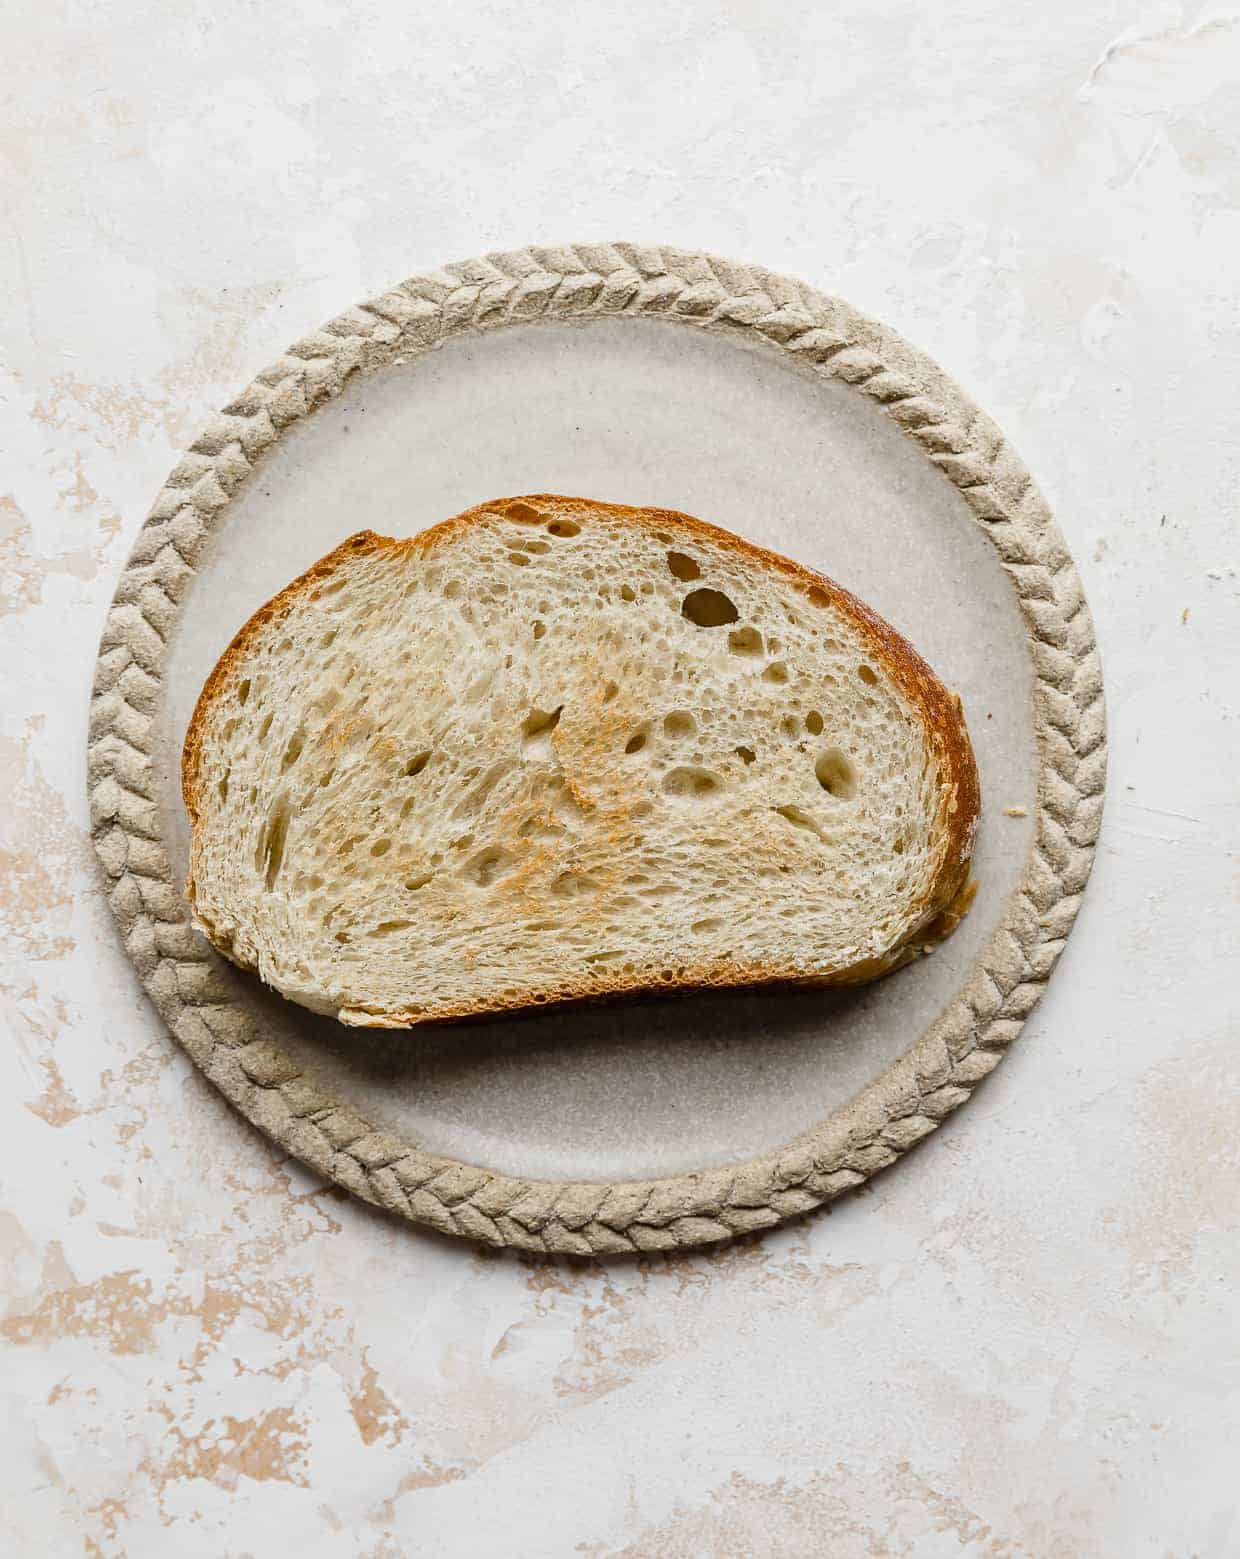 Slice of toasted French bread on a tan plate.